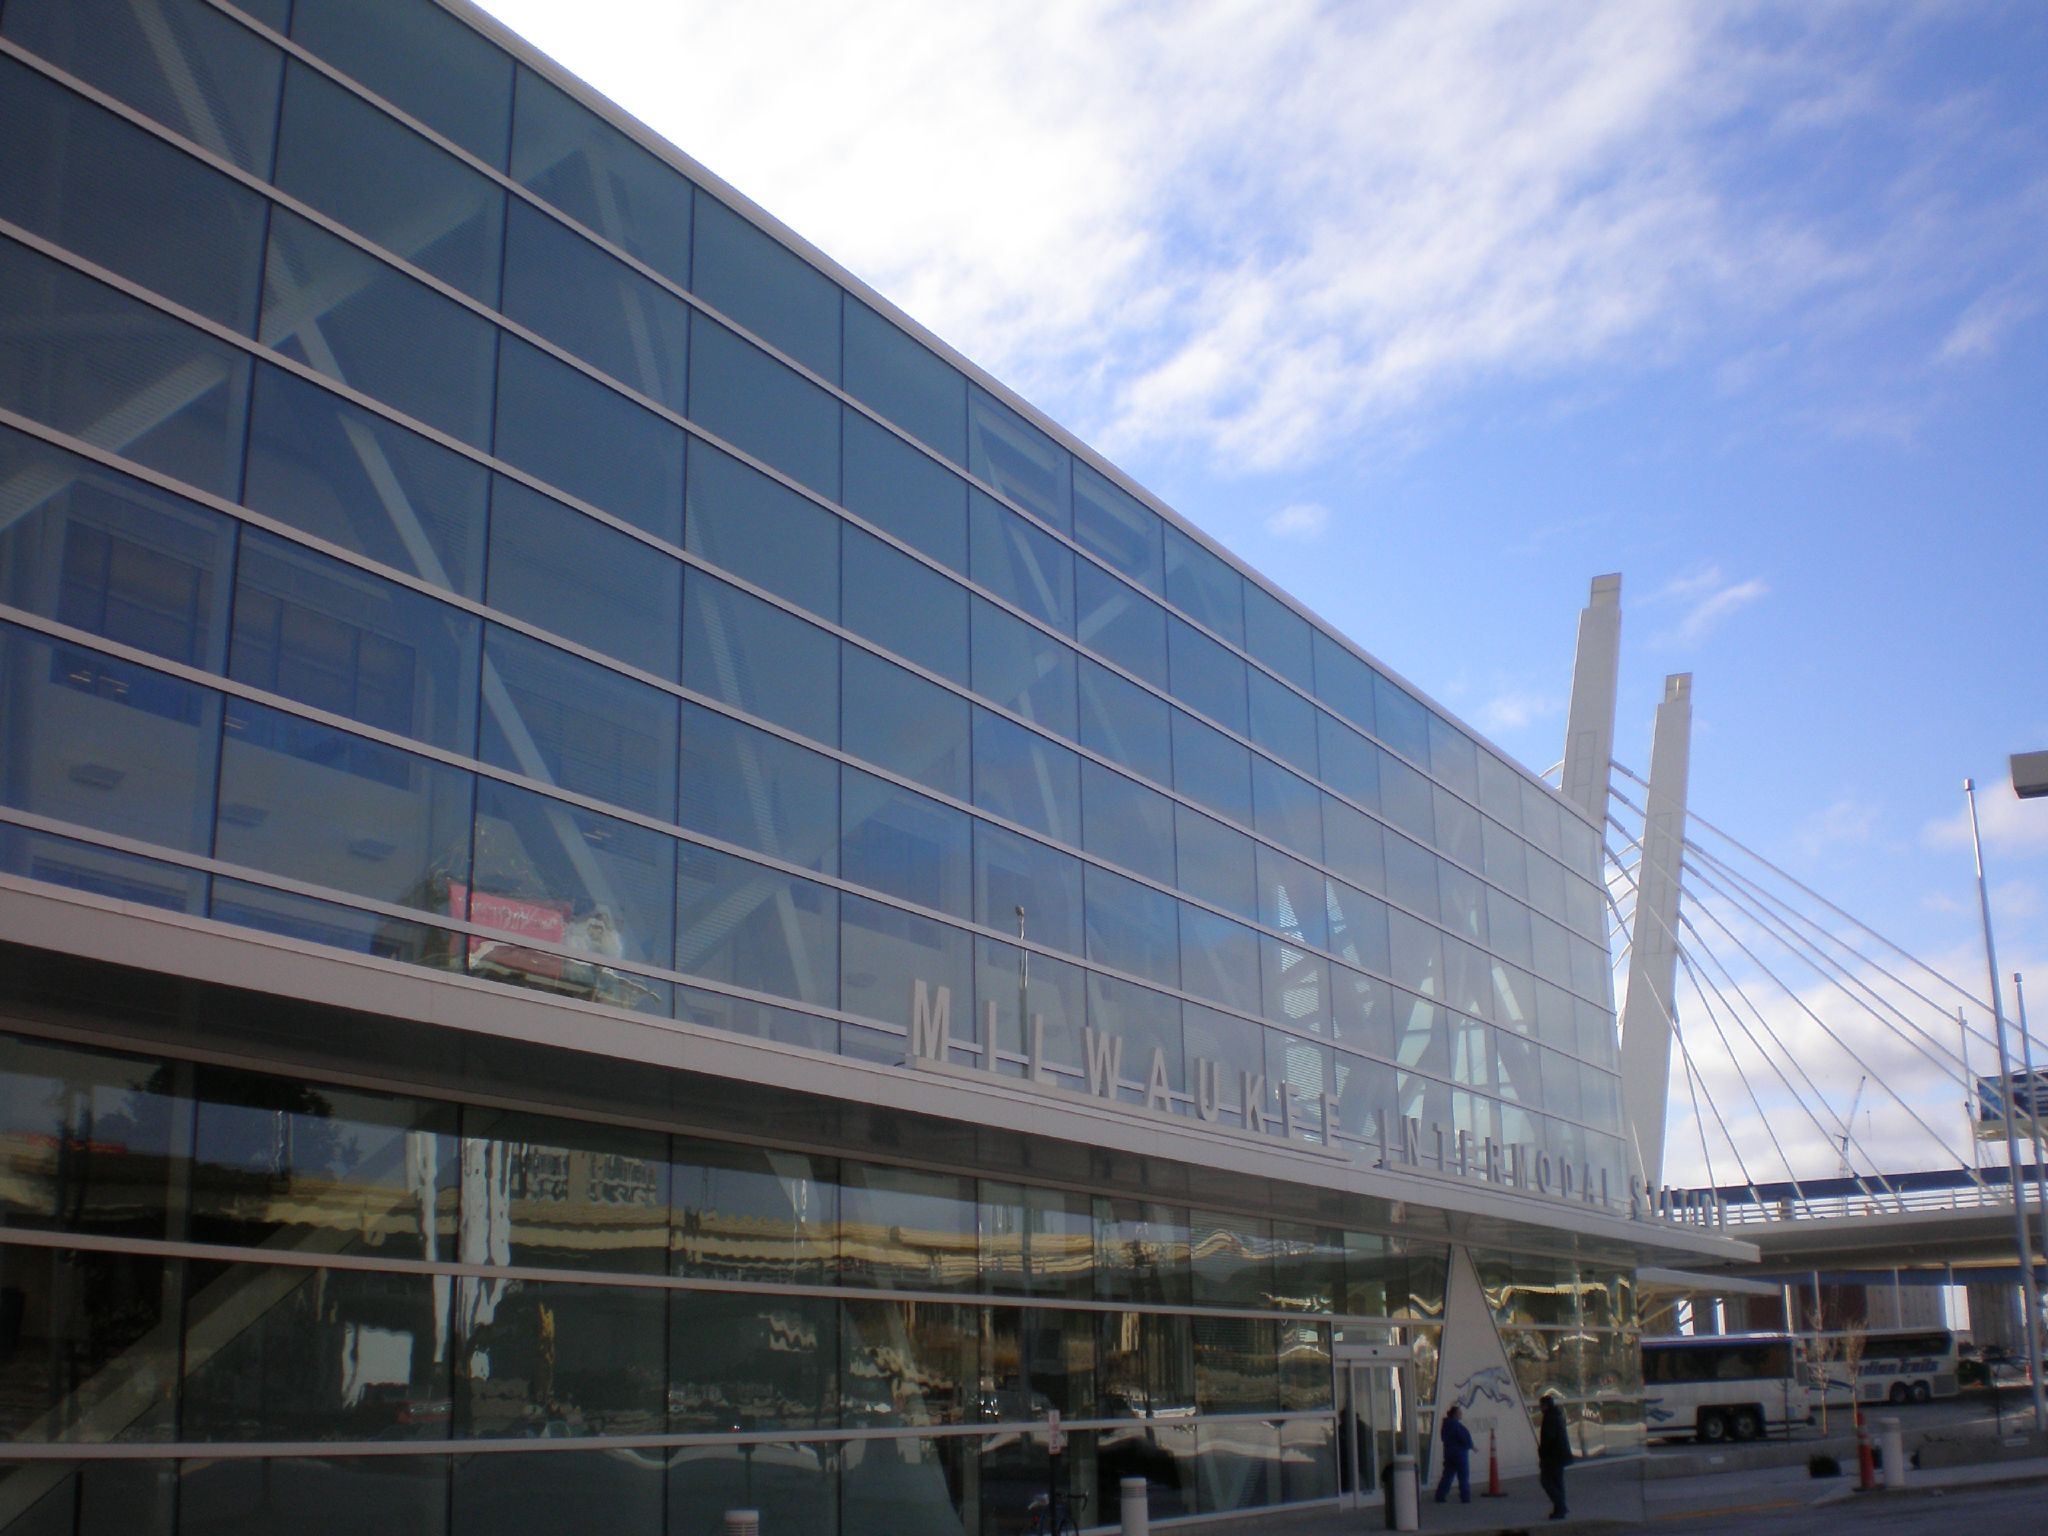 The Milwaukee Intermodal Station is a welcoming hub for transit in Milwaukee.